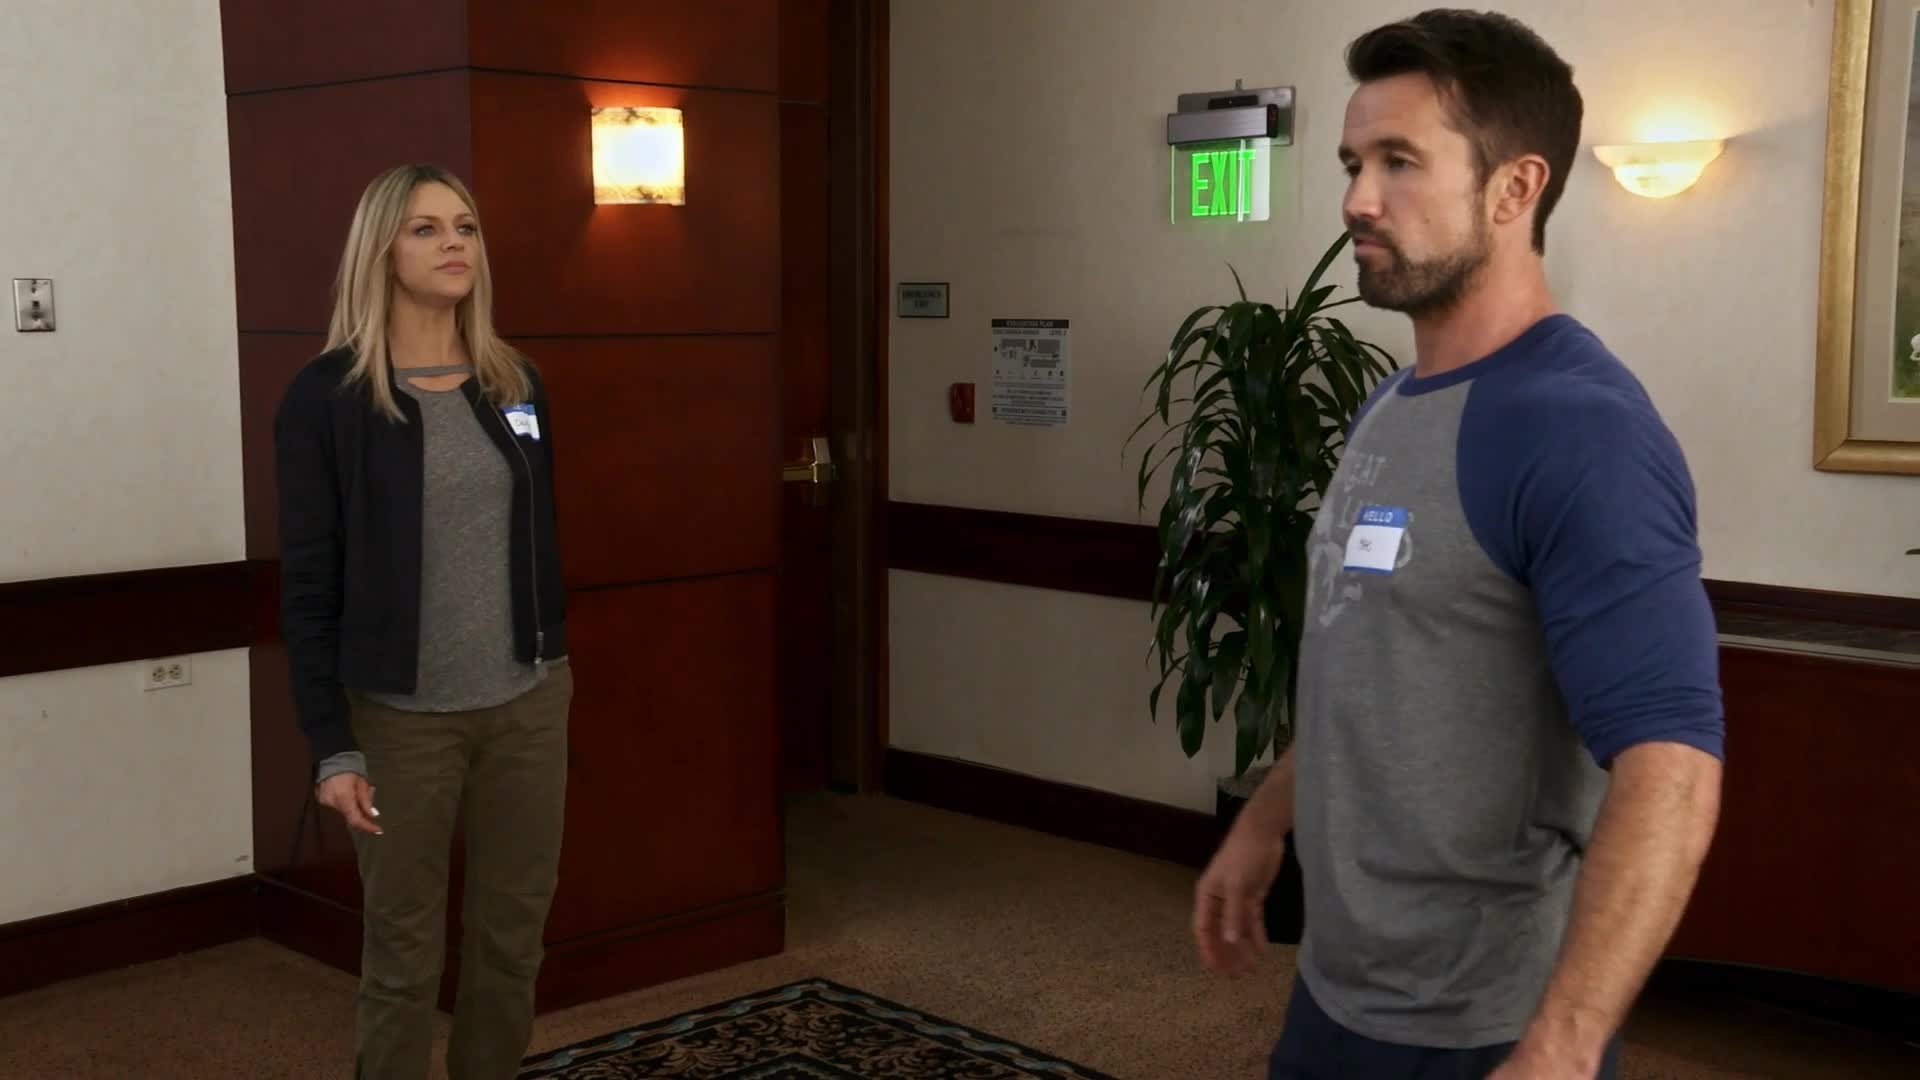 always sunny, always sunny in philadelphia, course, dee, gang, iasip, it's always sunny in philadelphia, its always sunny in philadelphia, kaitlin olson, mac, meeting, rob mcelhenney, sexual assault, surprise, time's up, vagina, It's Always Sunny in Philadelphia: Mac Lifts Dee by Her Crutch GIFs